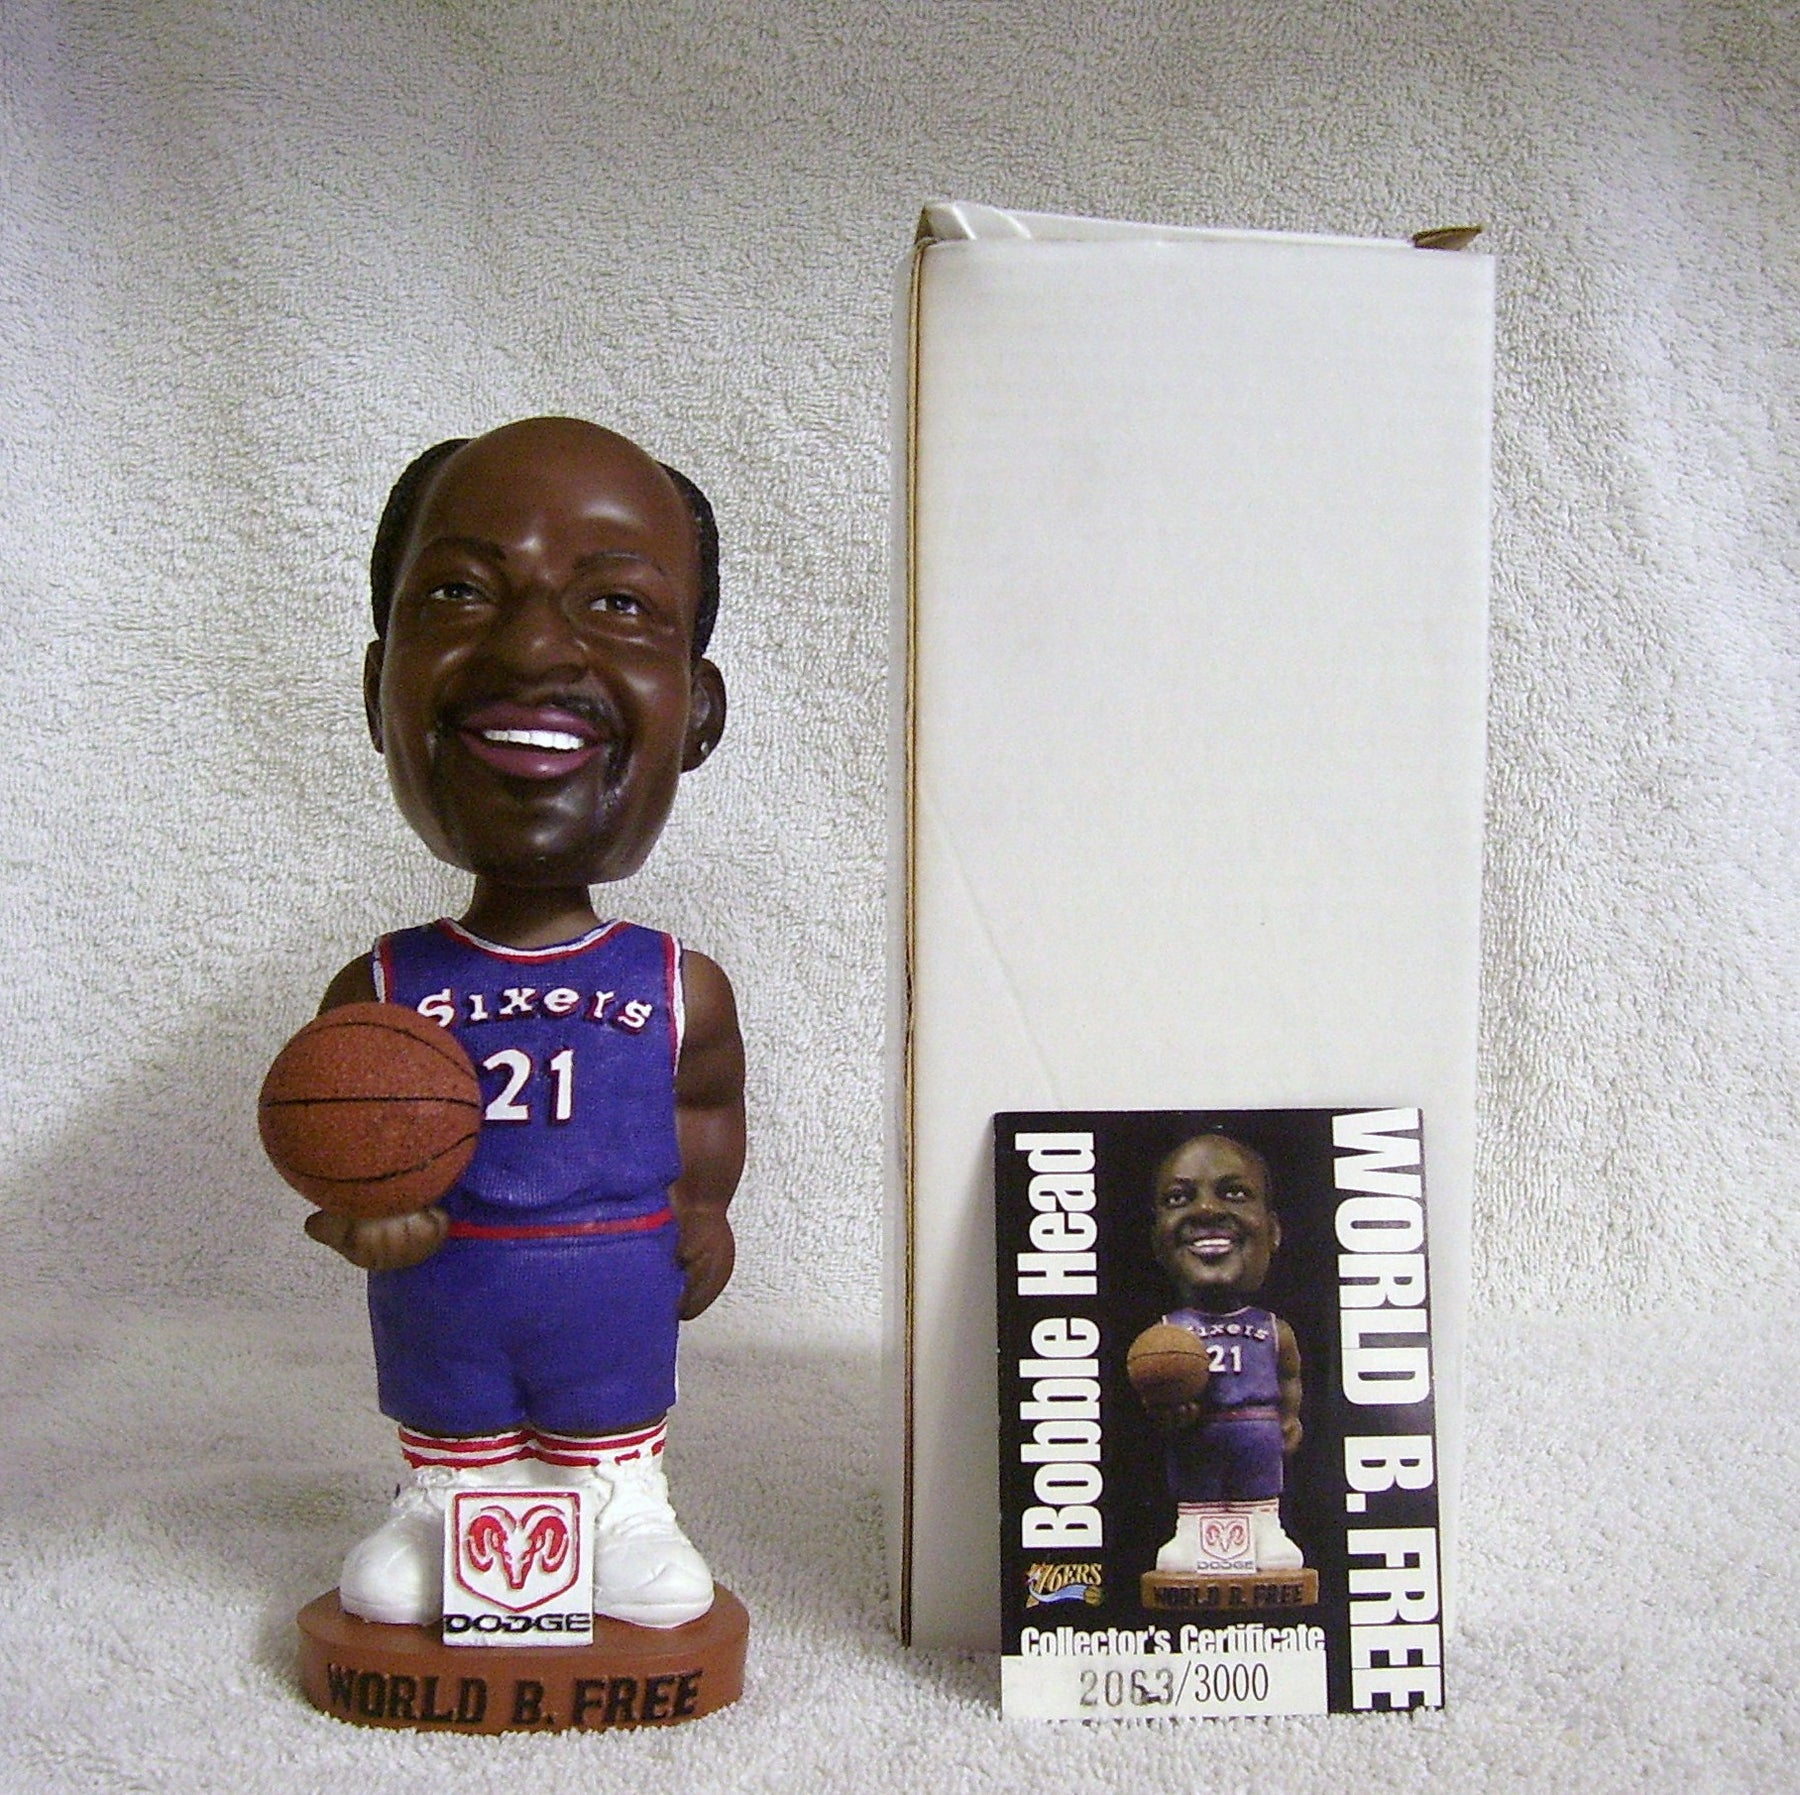 Lloyd World B. Free Bobblehead - BobblesGalore